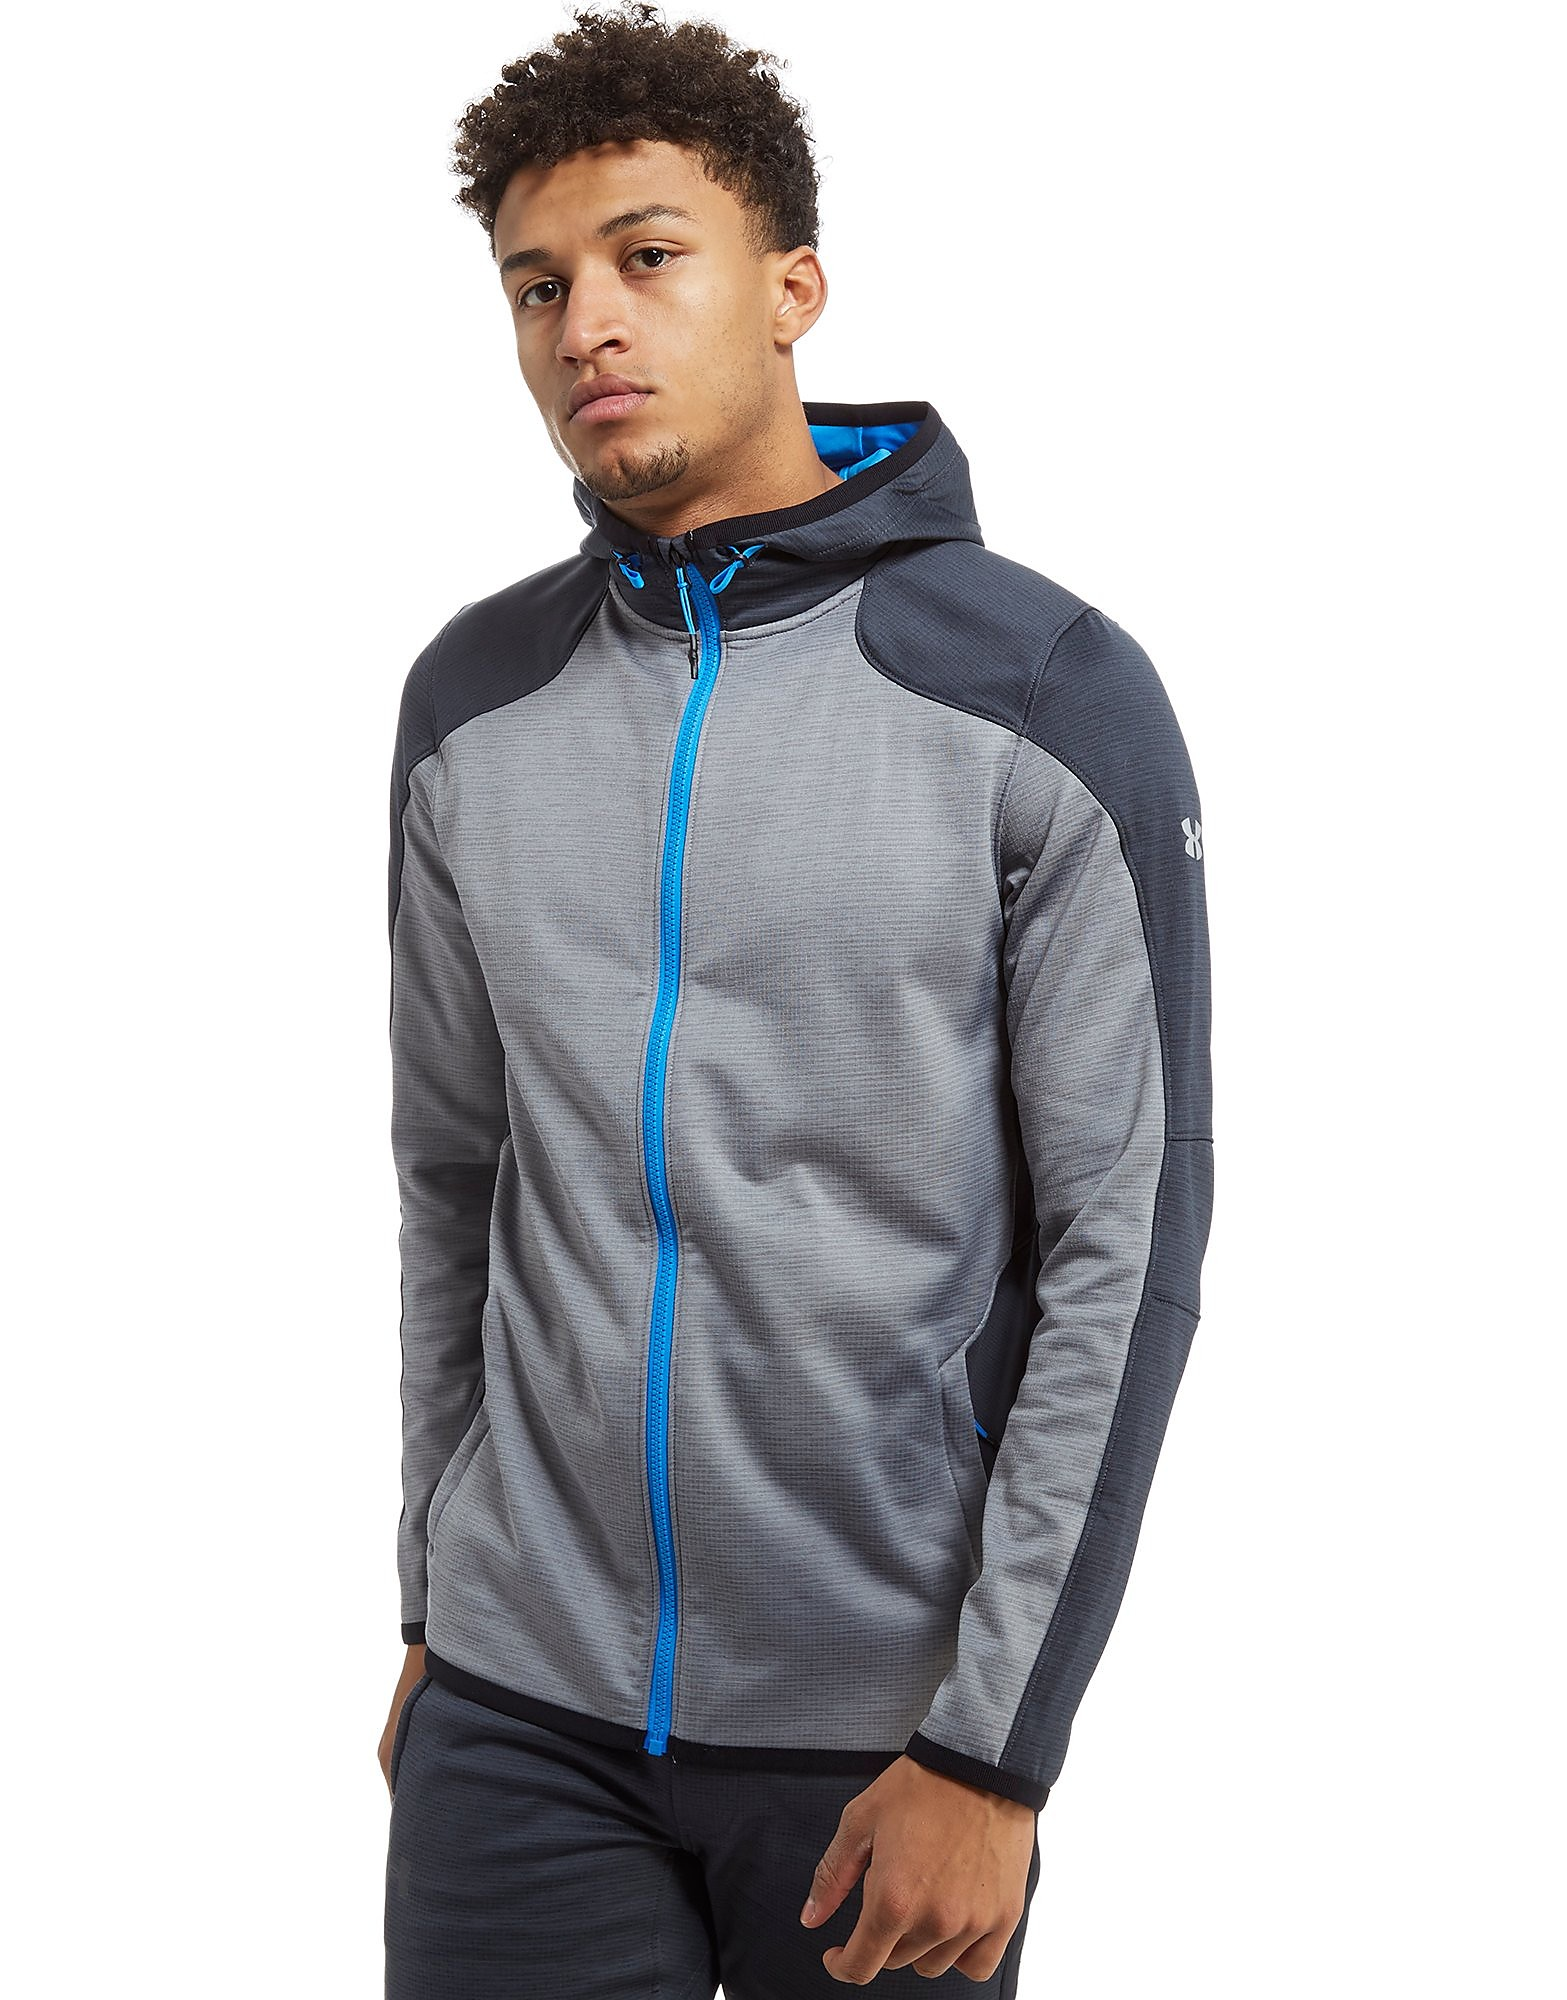 Under Armour Reactor Full Zip Hoodie